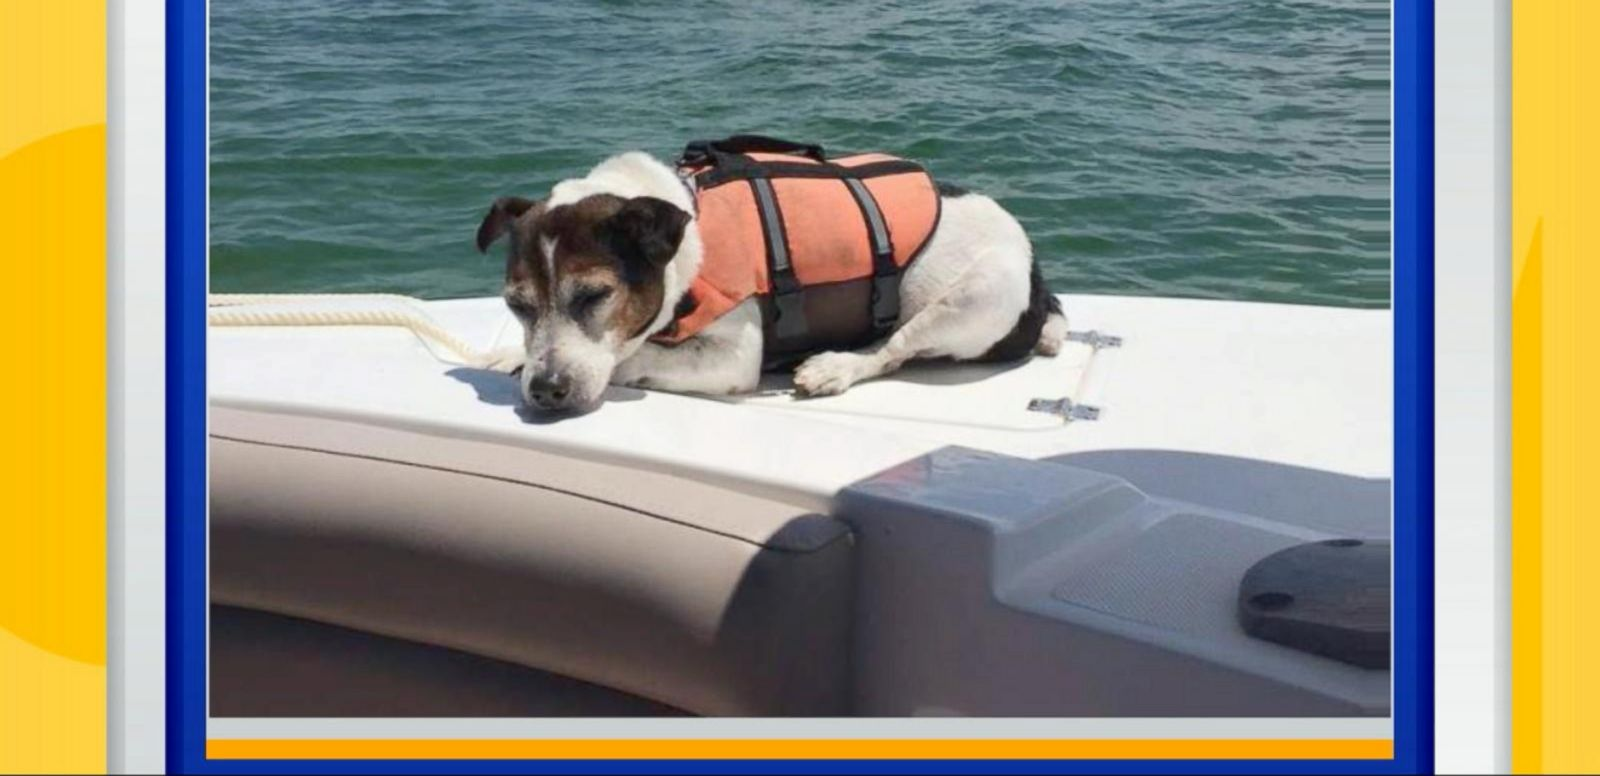 VIDEO: Rescuers Pull Jack Russell Terrier From the Ocean